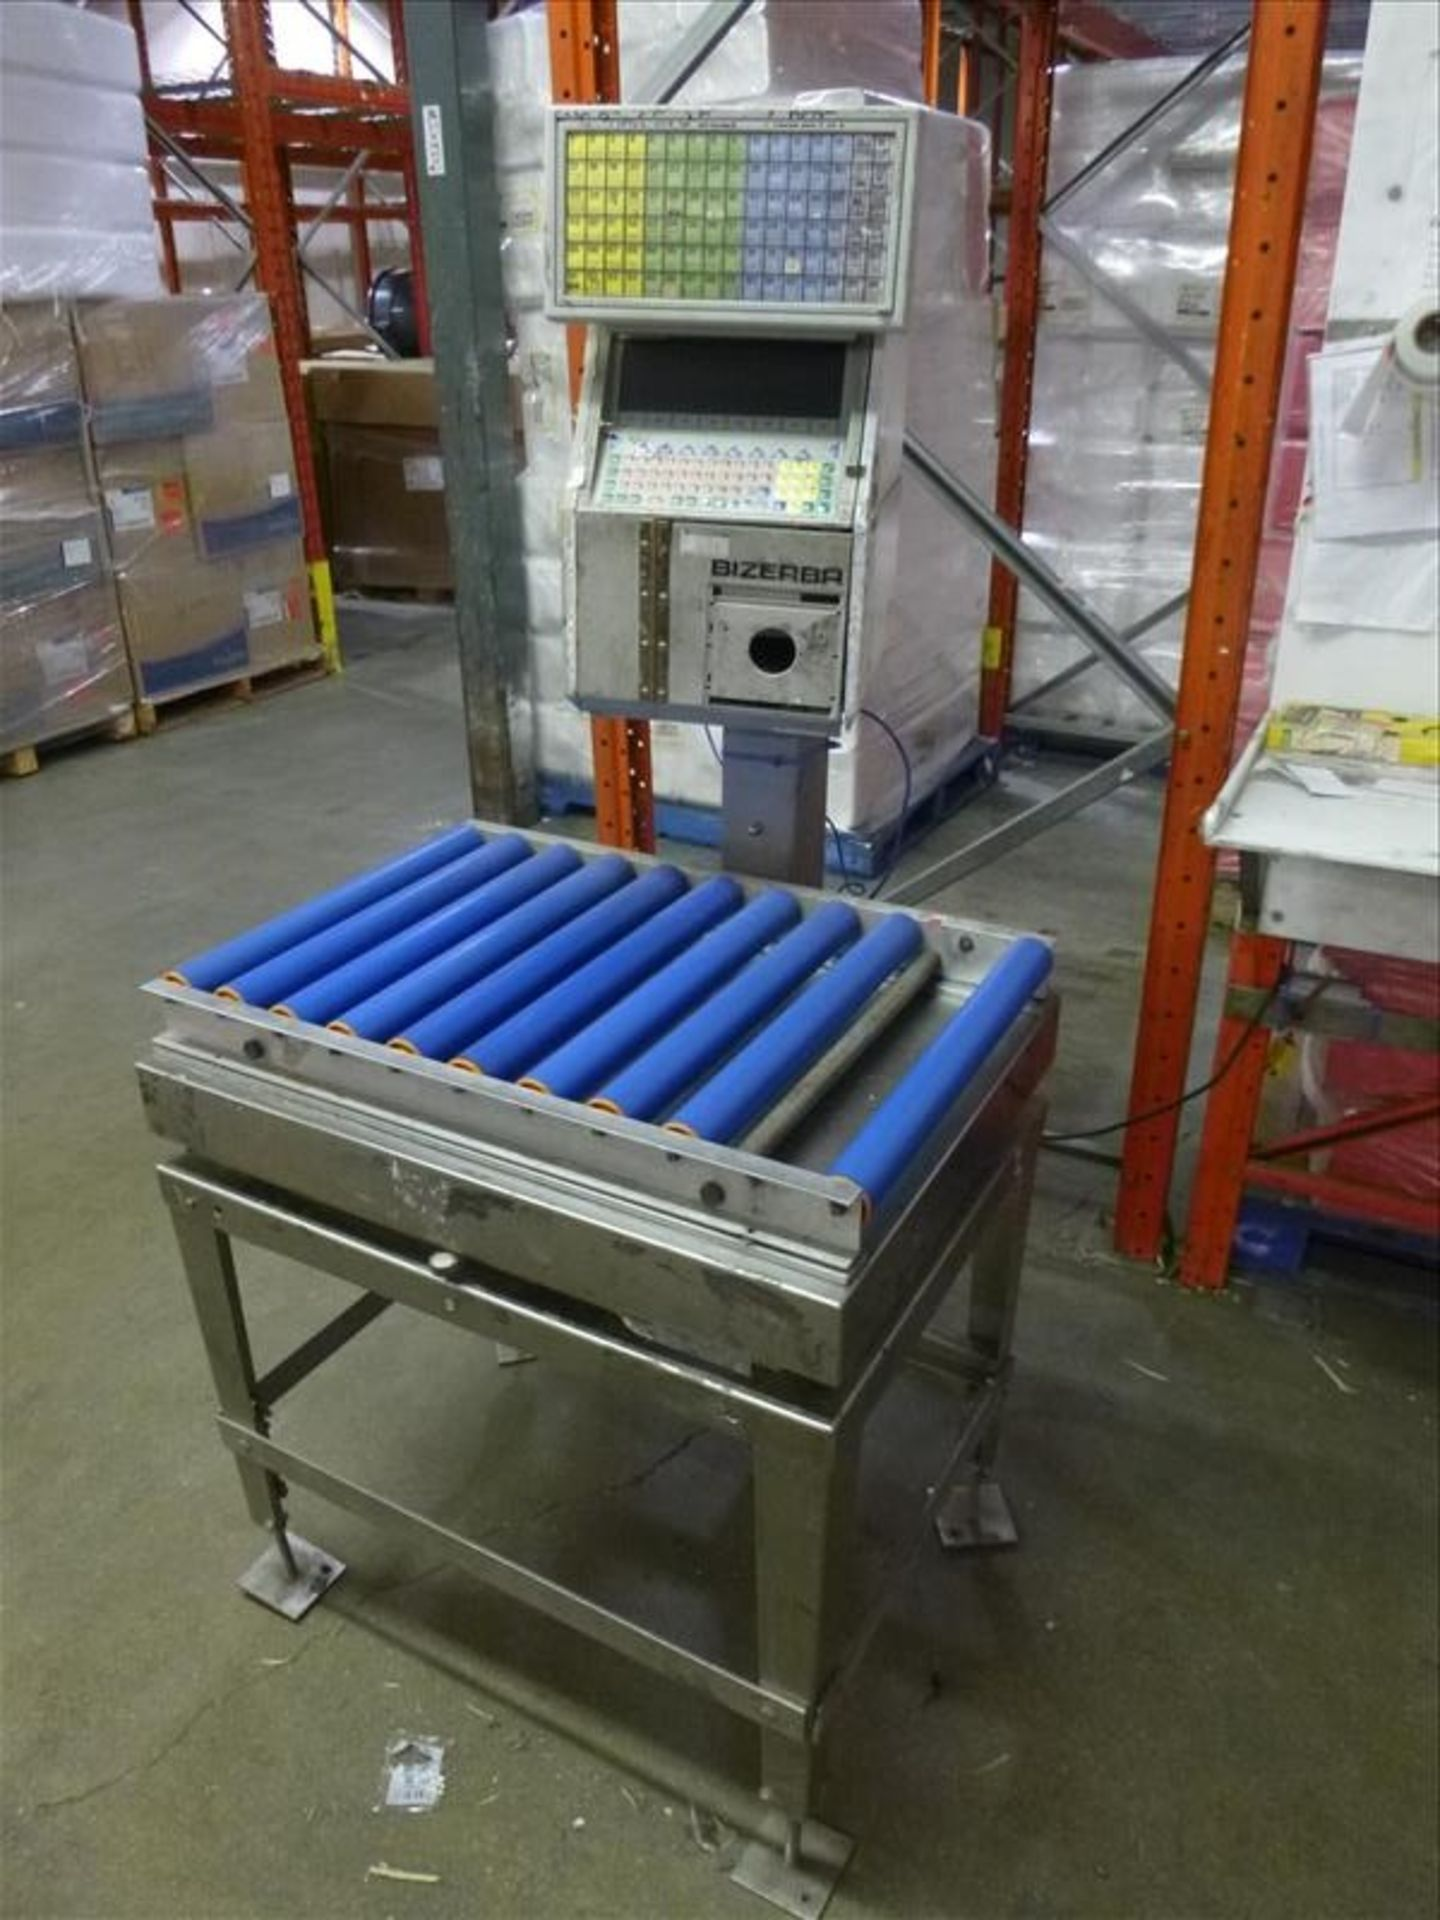 Lot 93 - Bizerba in-line check-weigher system, mod GH, ser. no. 1956256 c/w s/s platform/rollers, 23 in. x 31